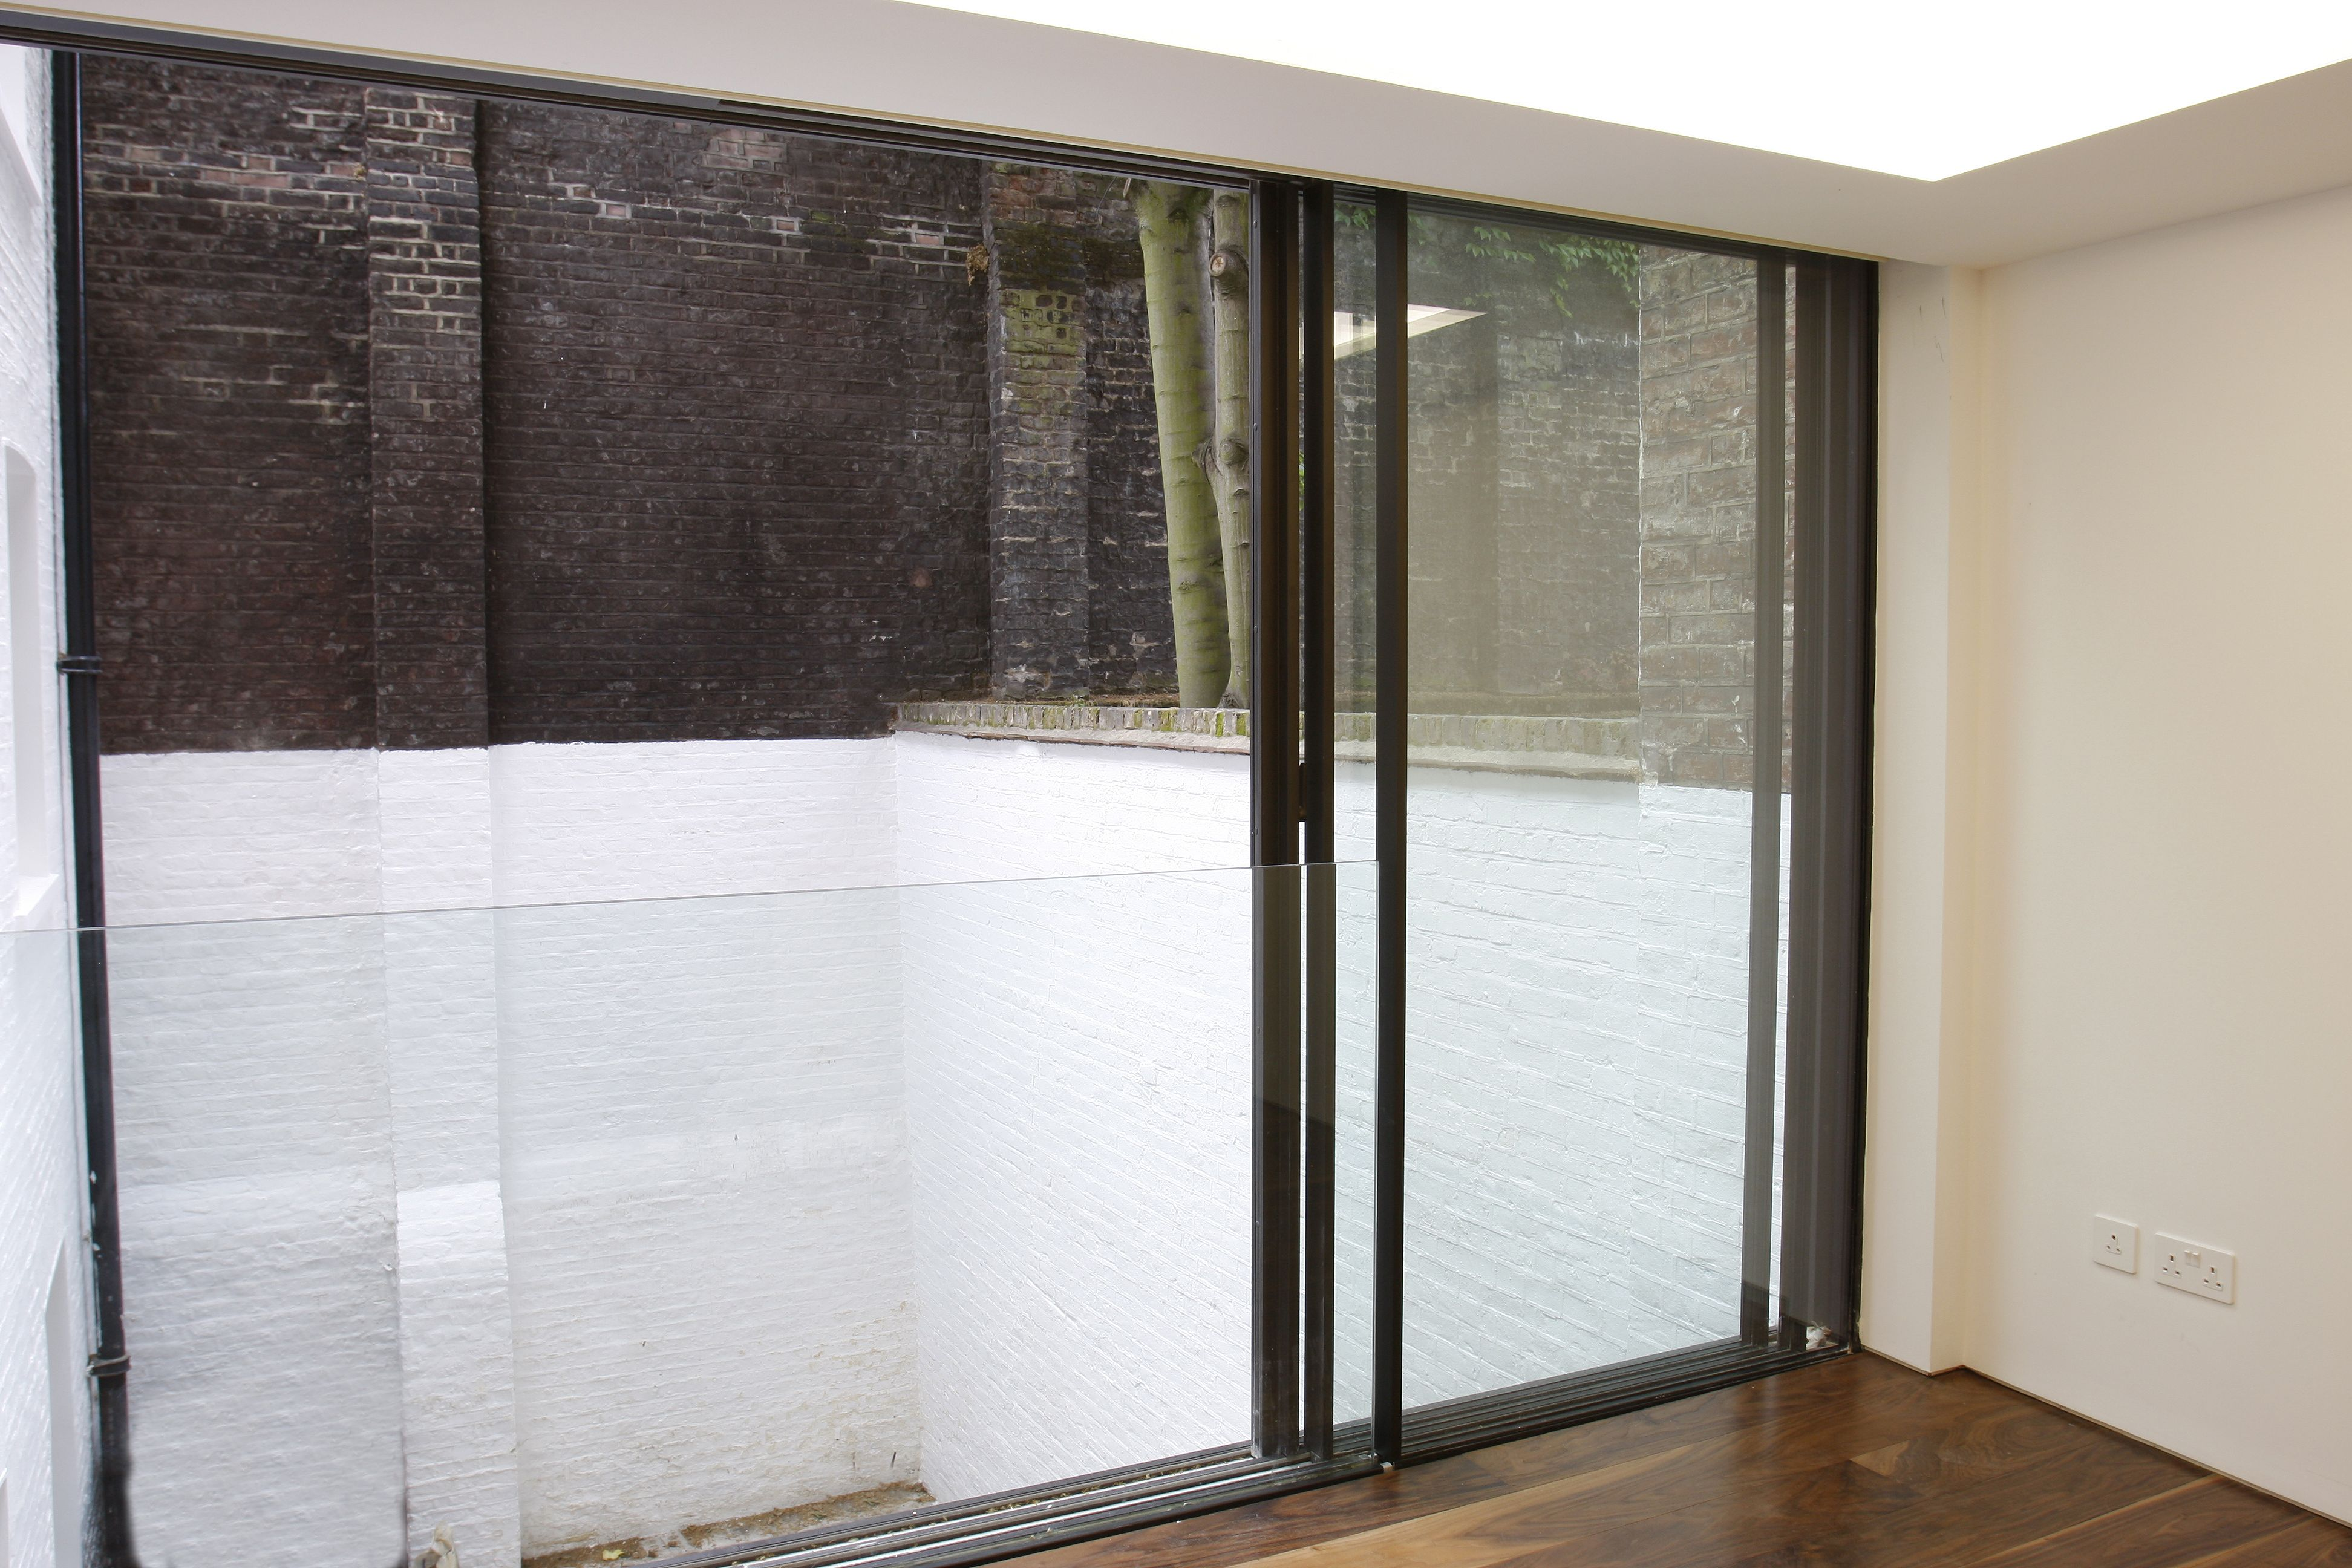 The Sliding Glass Panes Slide Behind The Fixed One With A